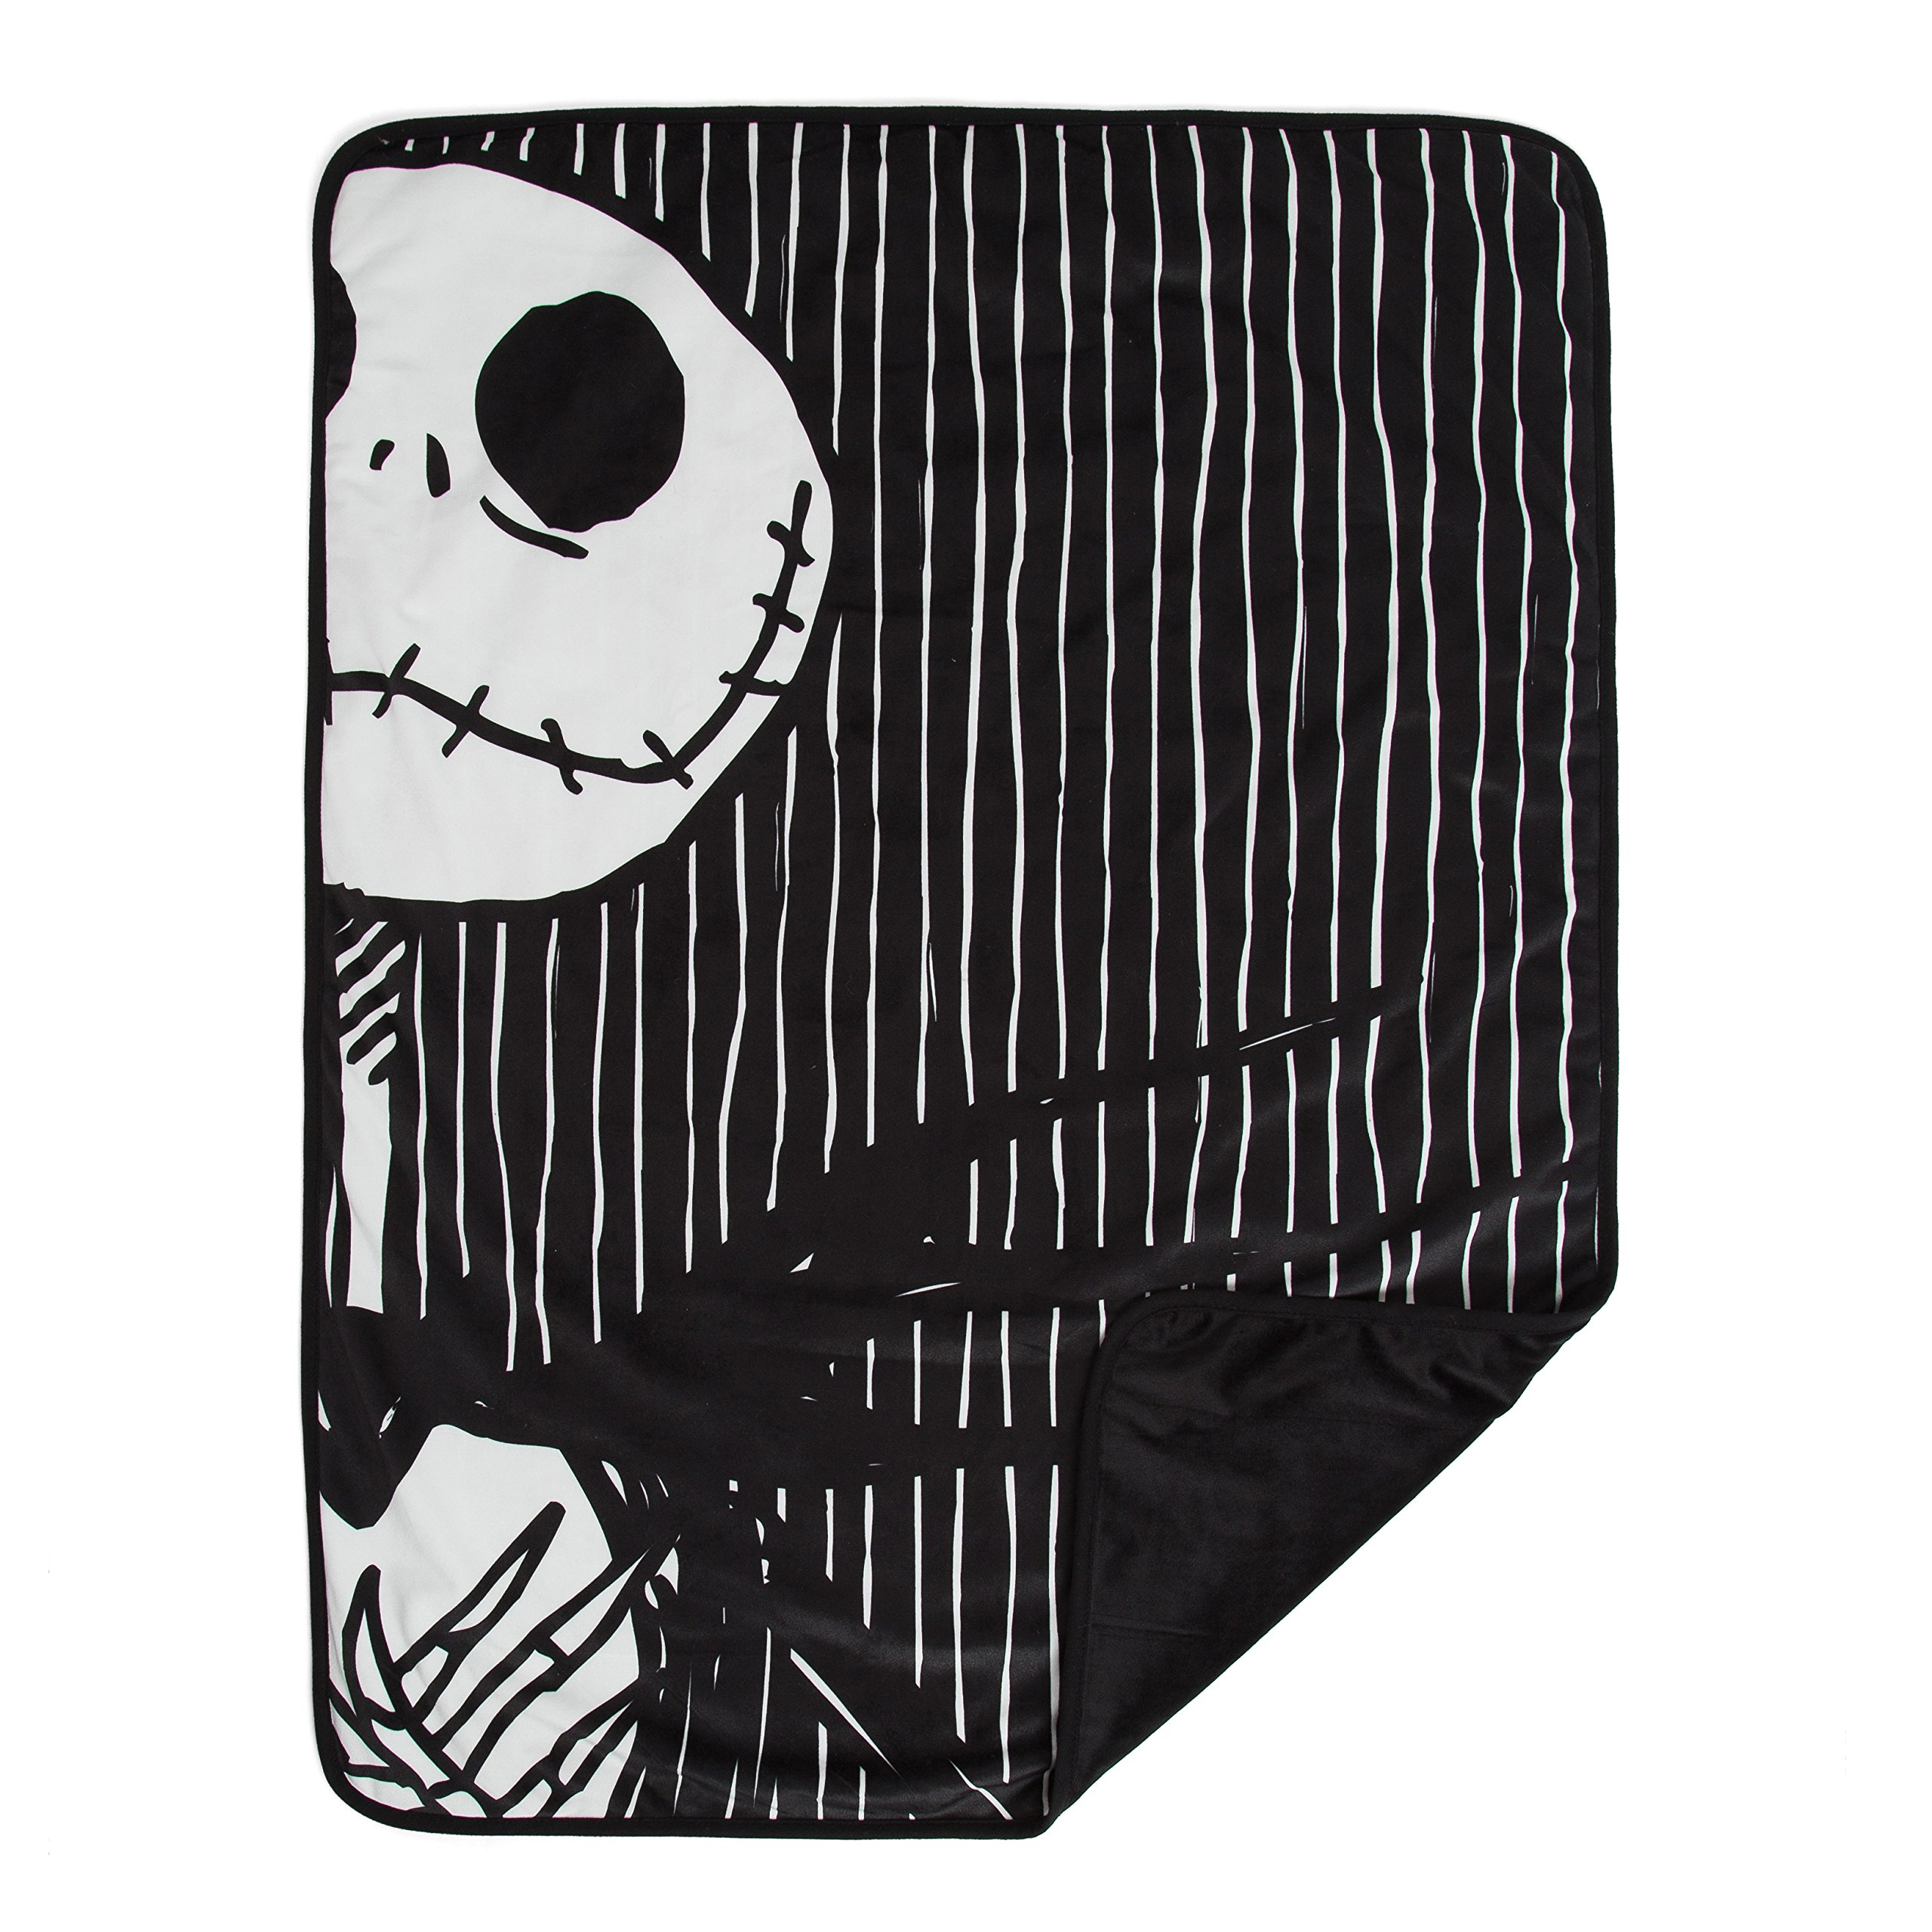 "Disney Nightmare Before Christmas Jack Skellington Luxury Multi-Functional Pet Throw Blanket, Portable Dog/Cat Mat, 30""x40"", Collector's Edition by Disney (Image #1)"